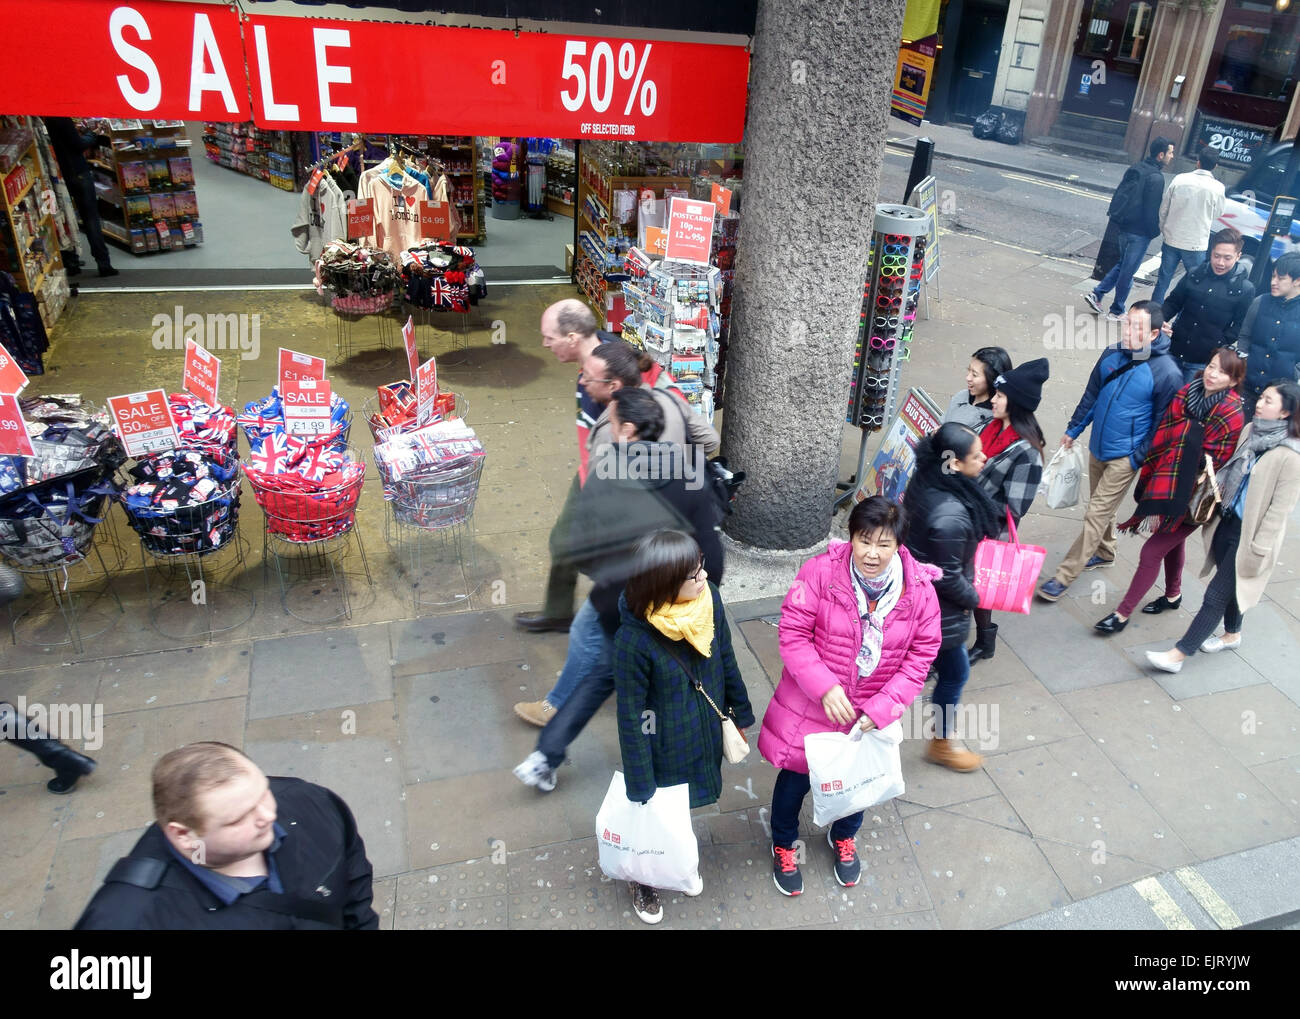 Pedestrians in Shaftesbury Avenue in West End of London - Stock Image